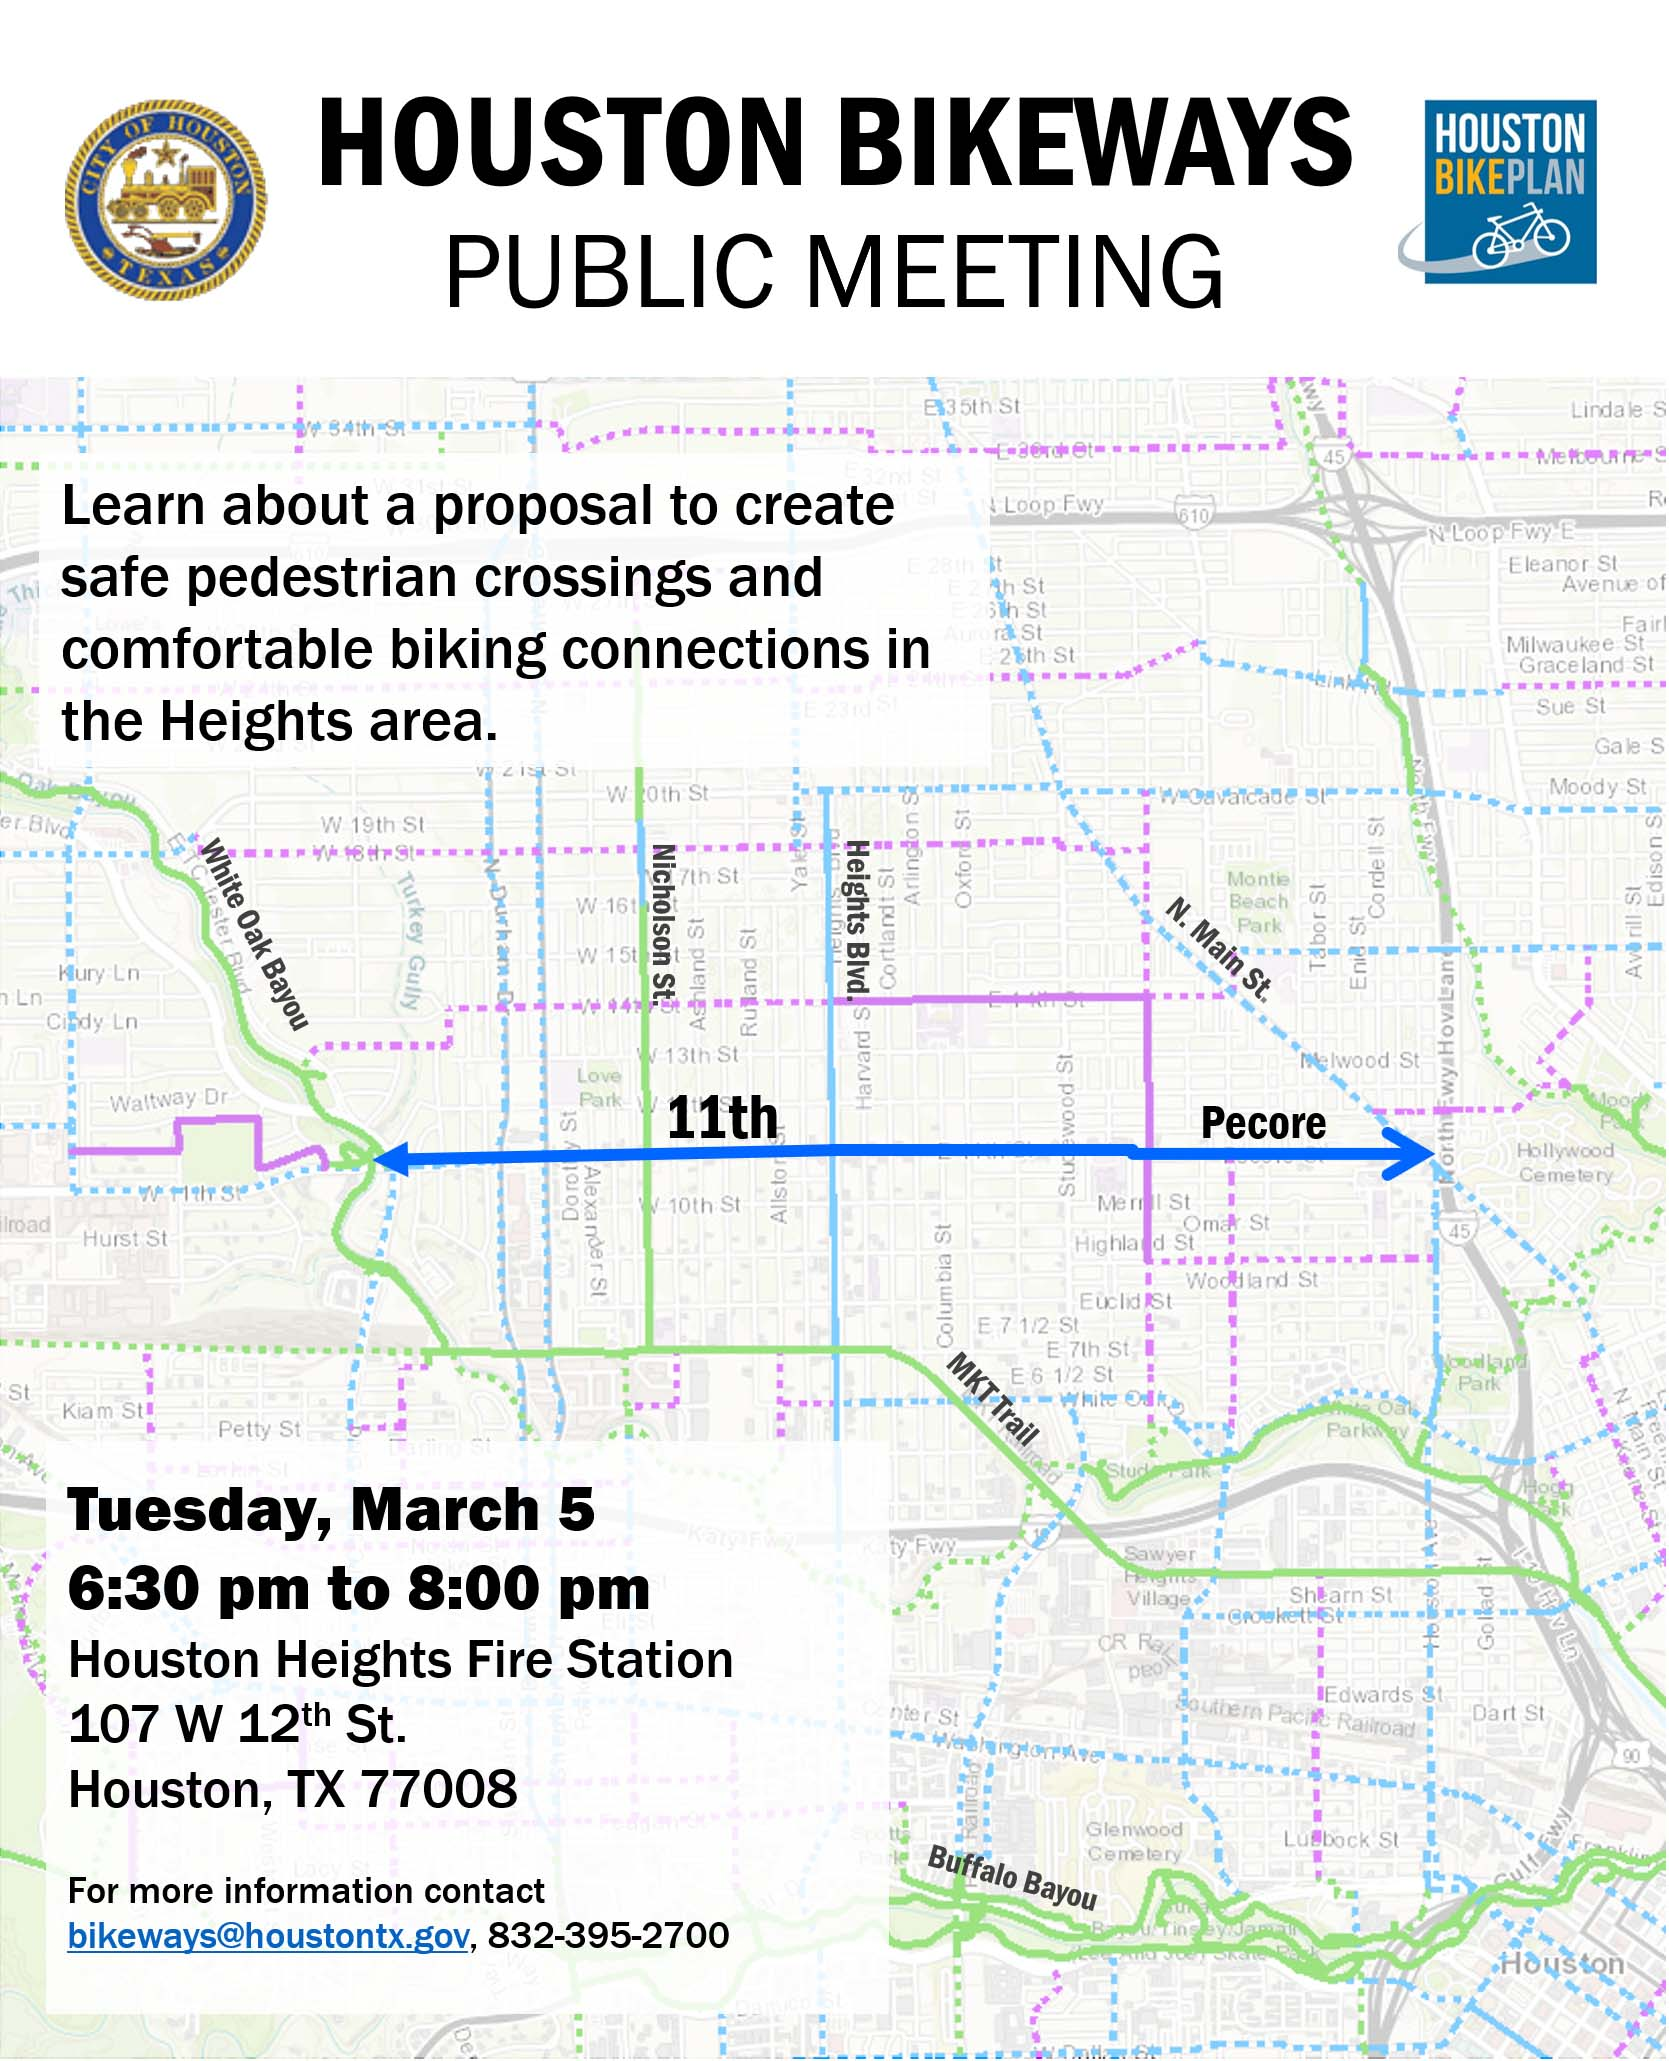 Houston Bikeways Public Meeting.jpg